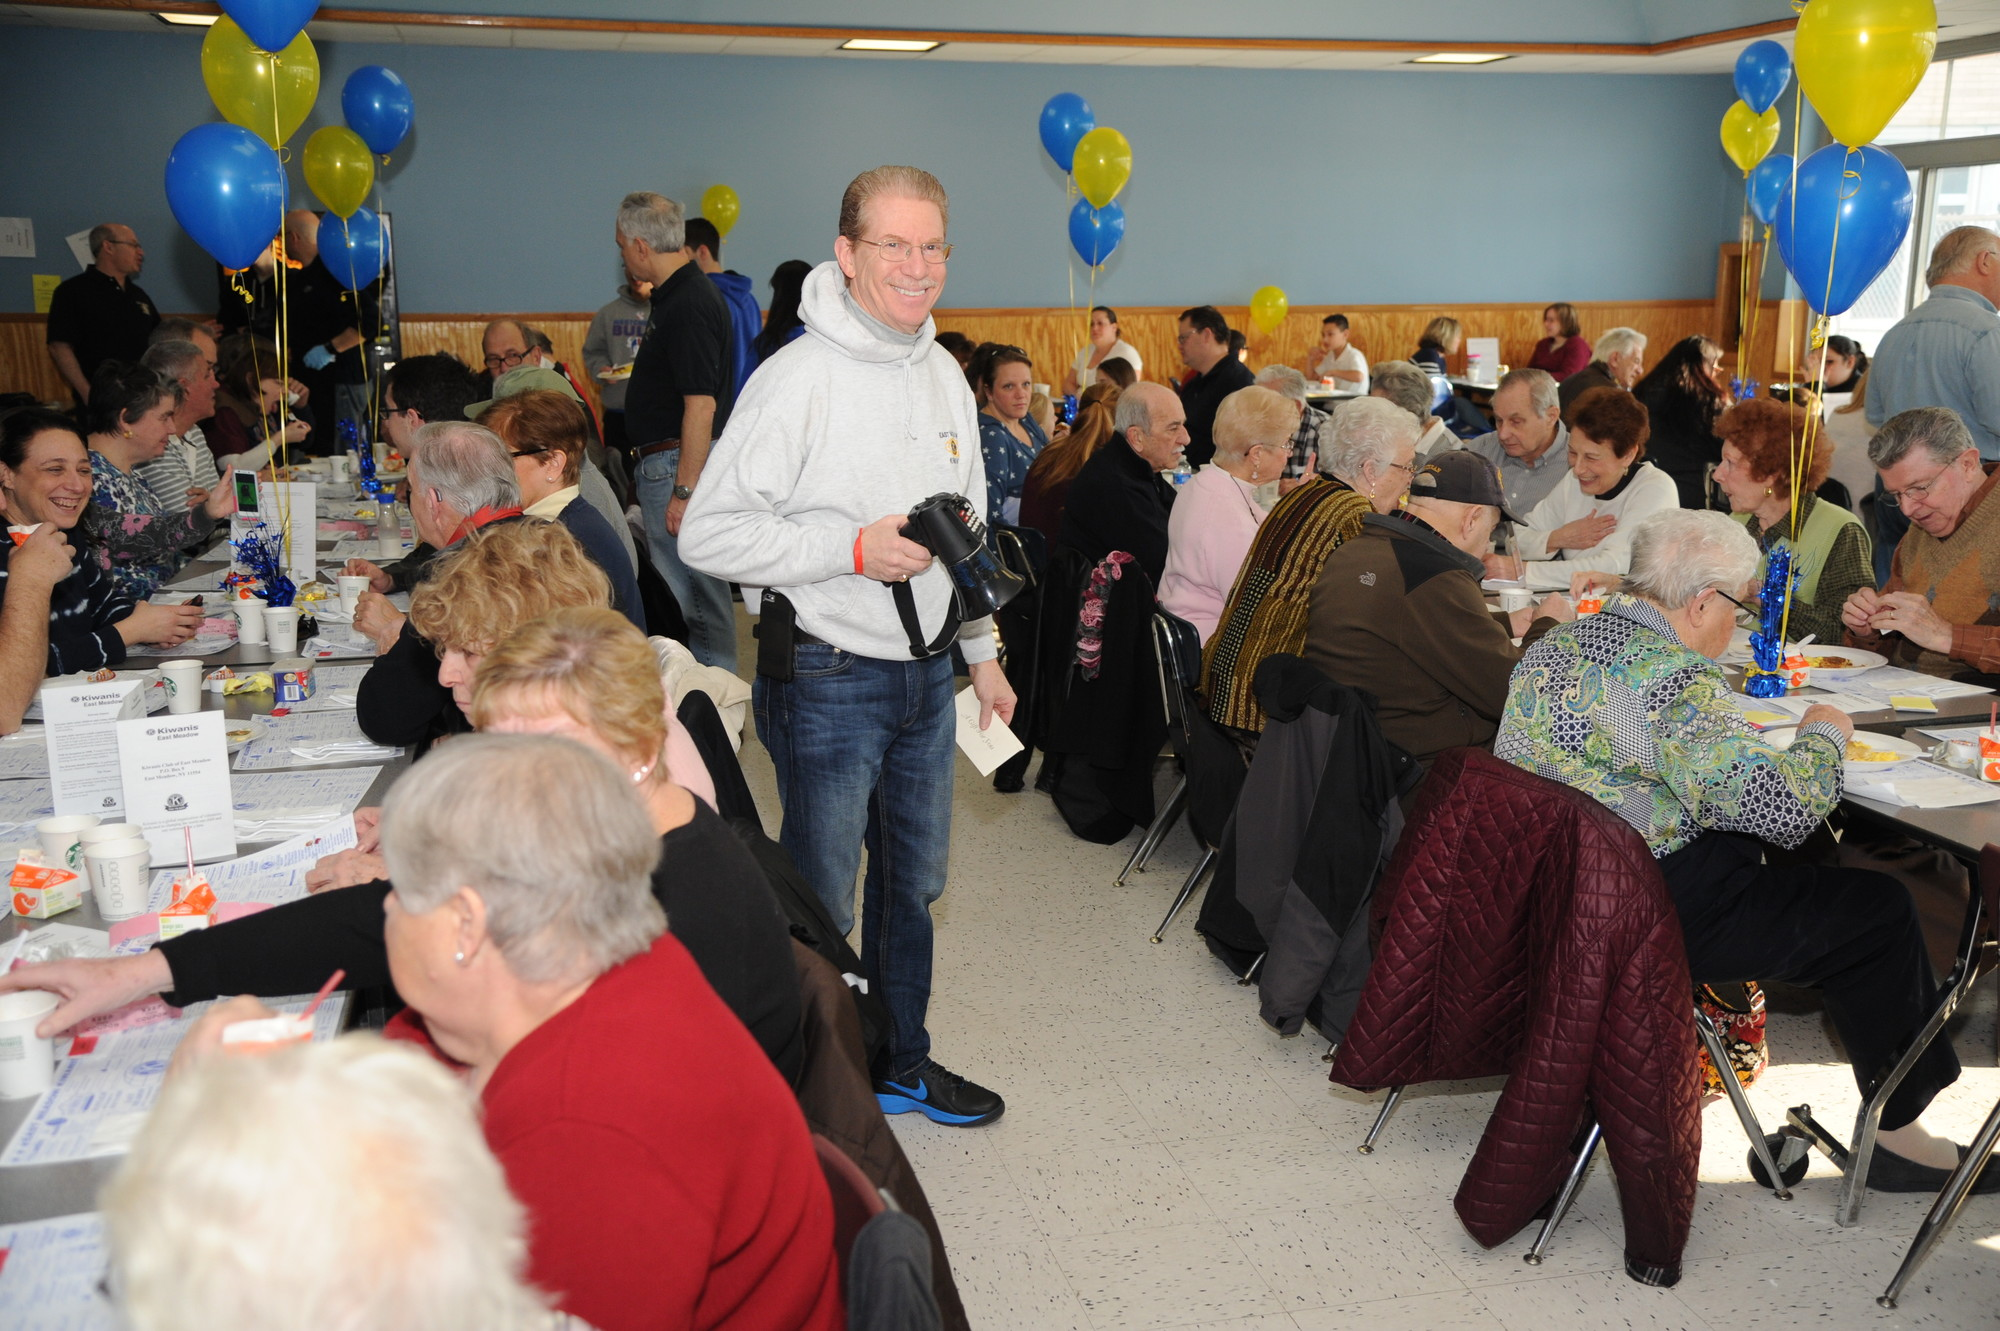 Event chairman Gary Fromowitz was pleased with the turnout.